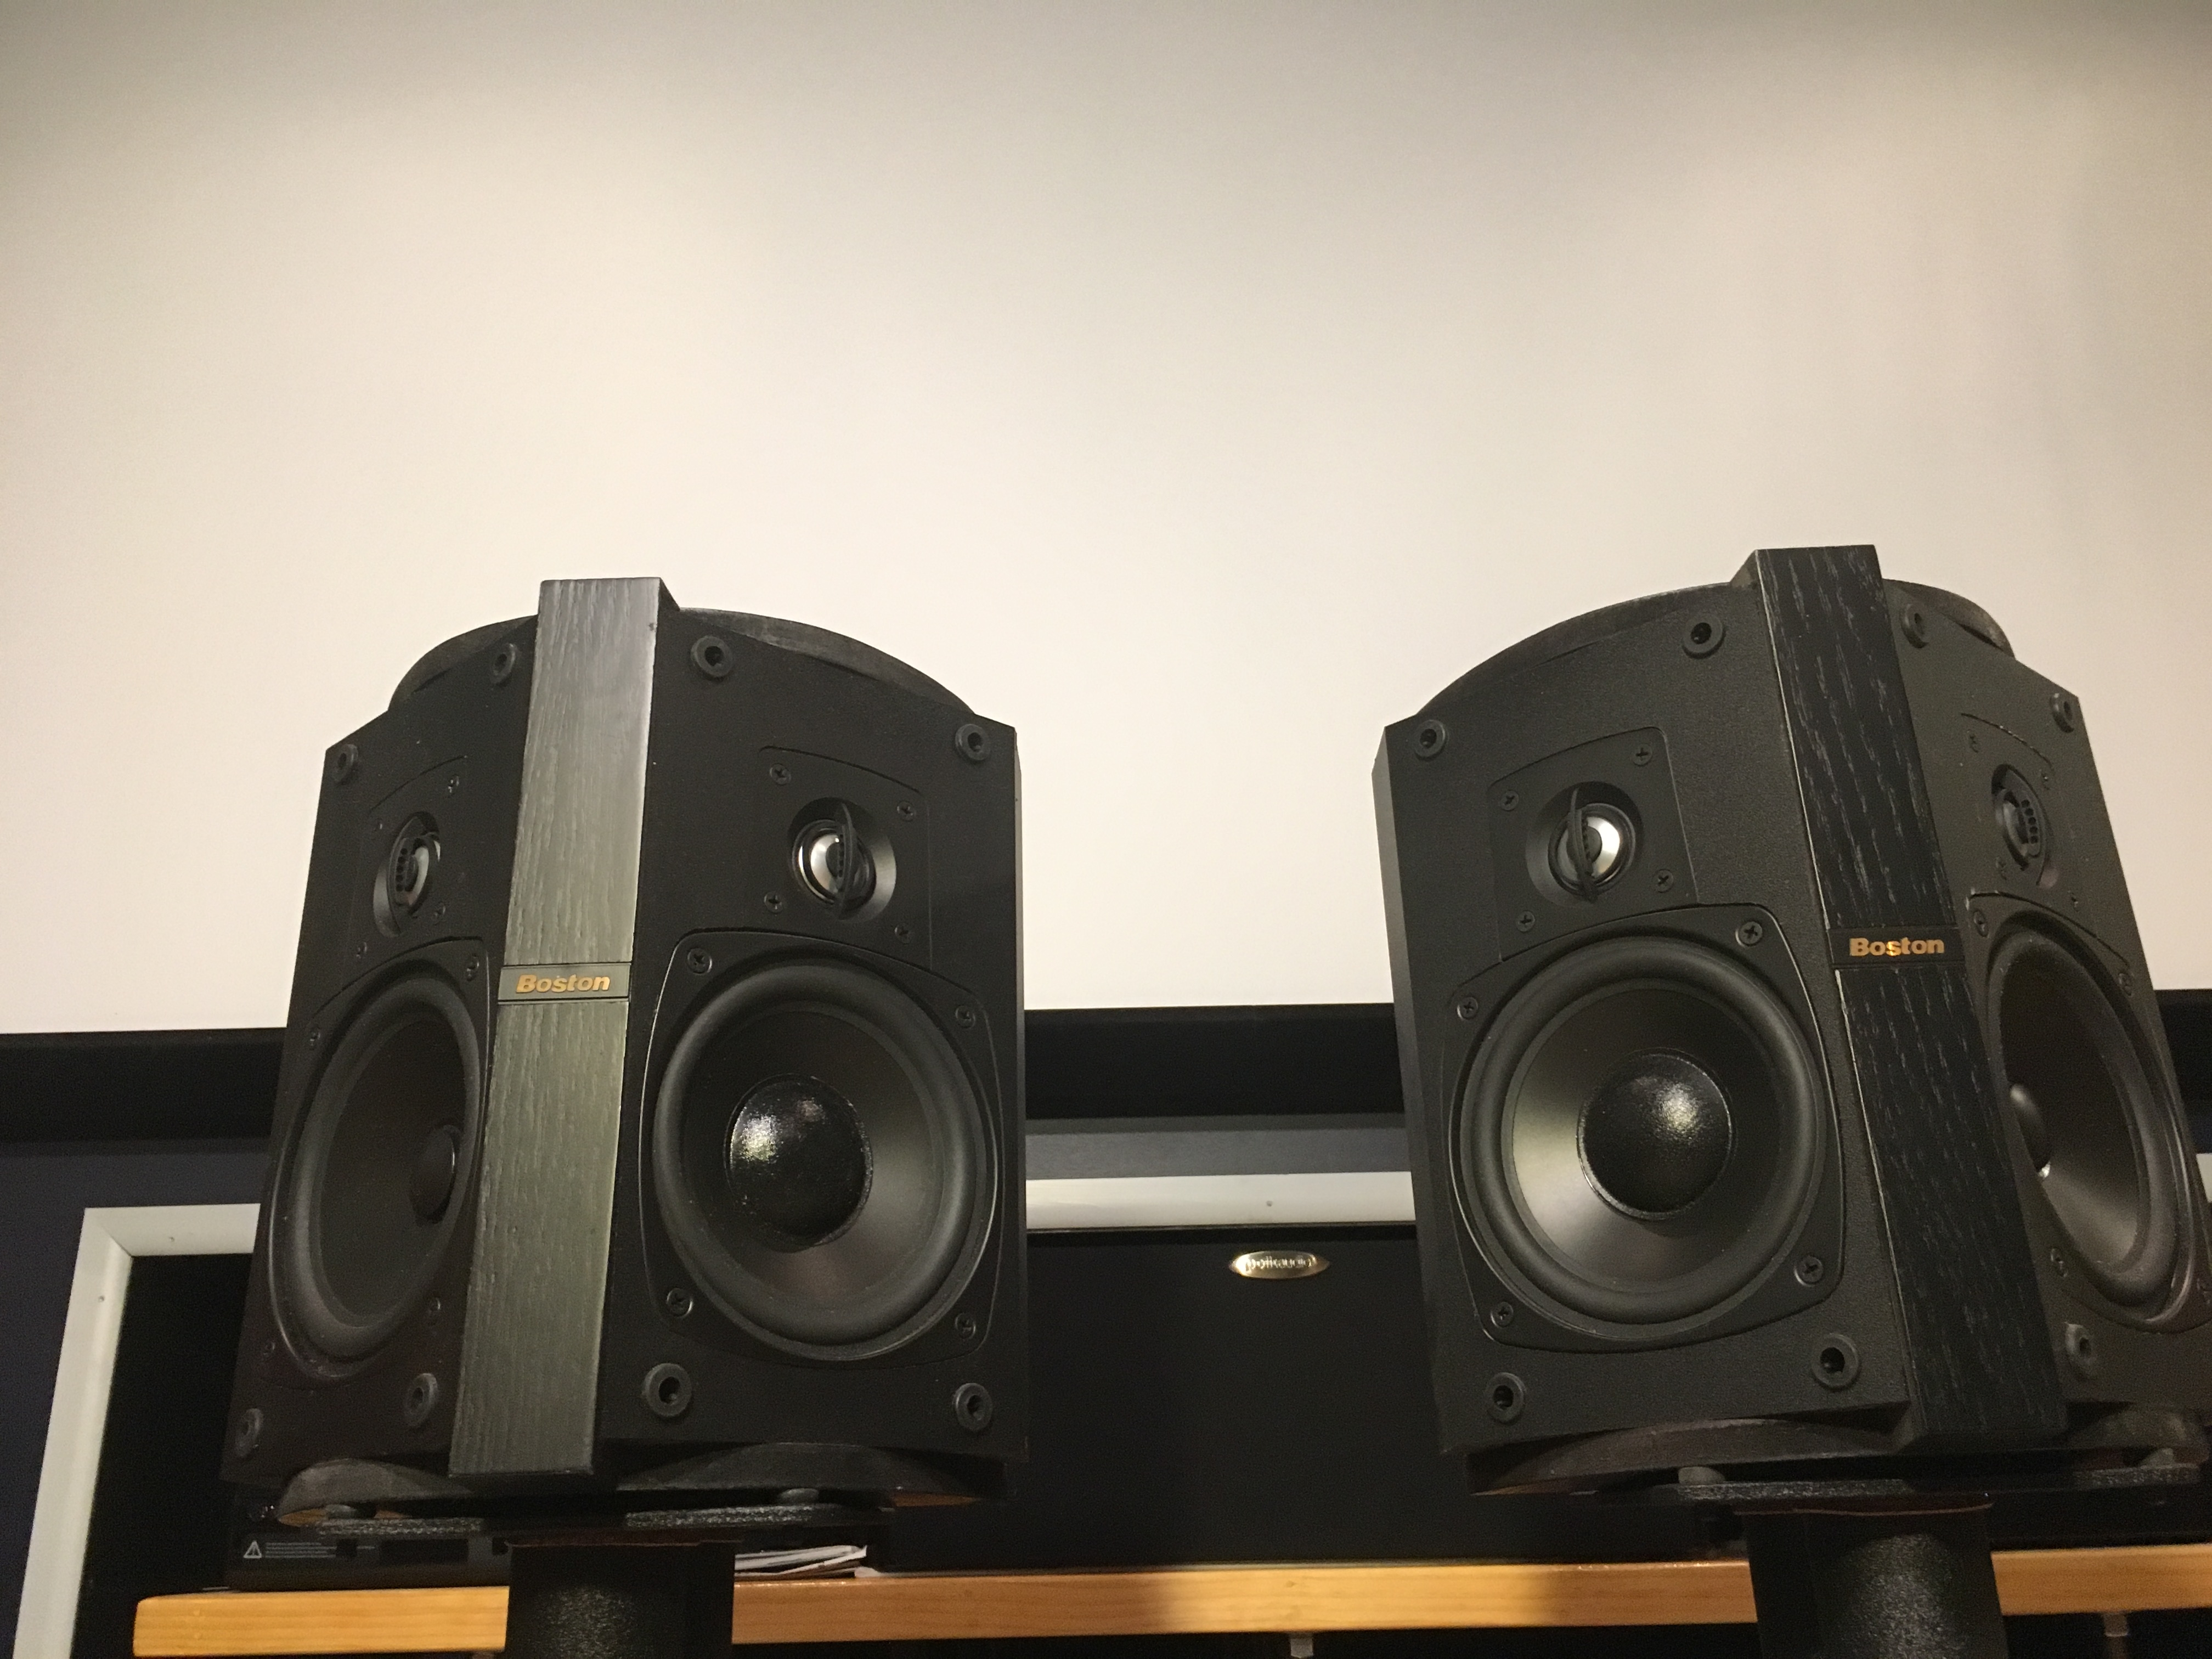 Boston Acoustics Vr Speakers For Sale Complete 71 Or Will A 250 Haxur1idjmr6